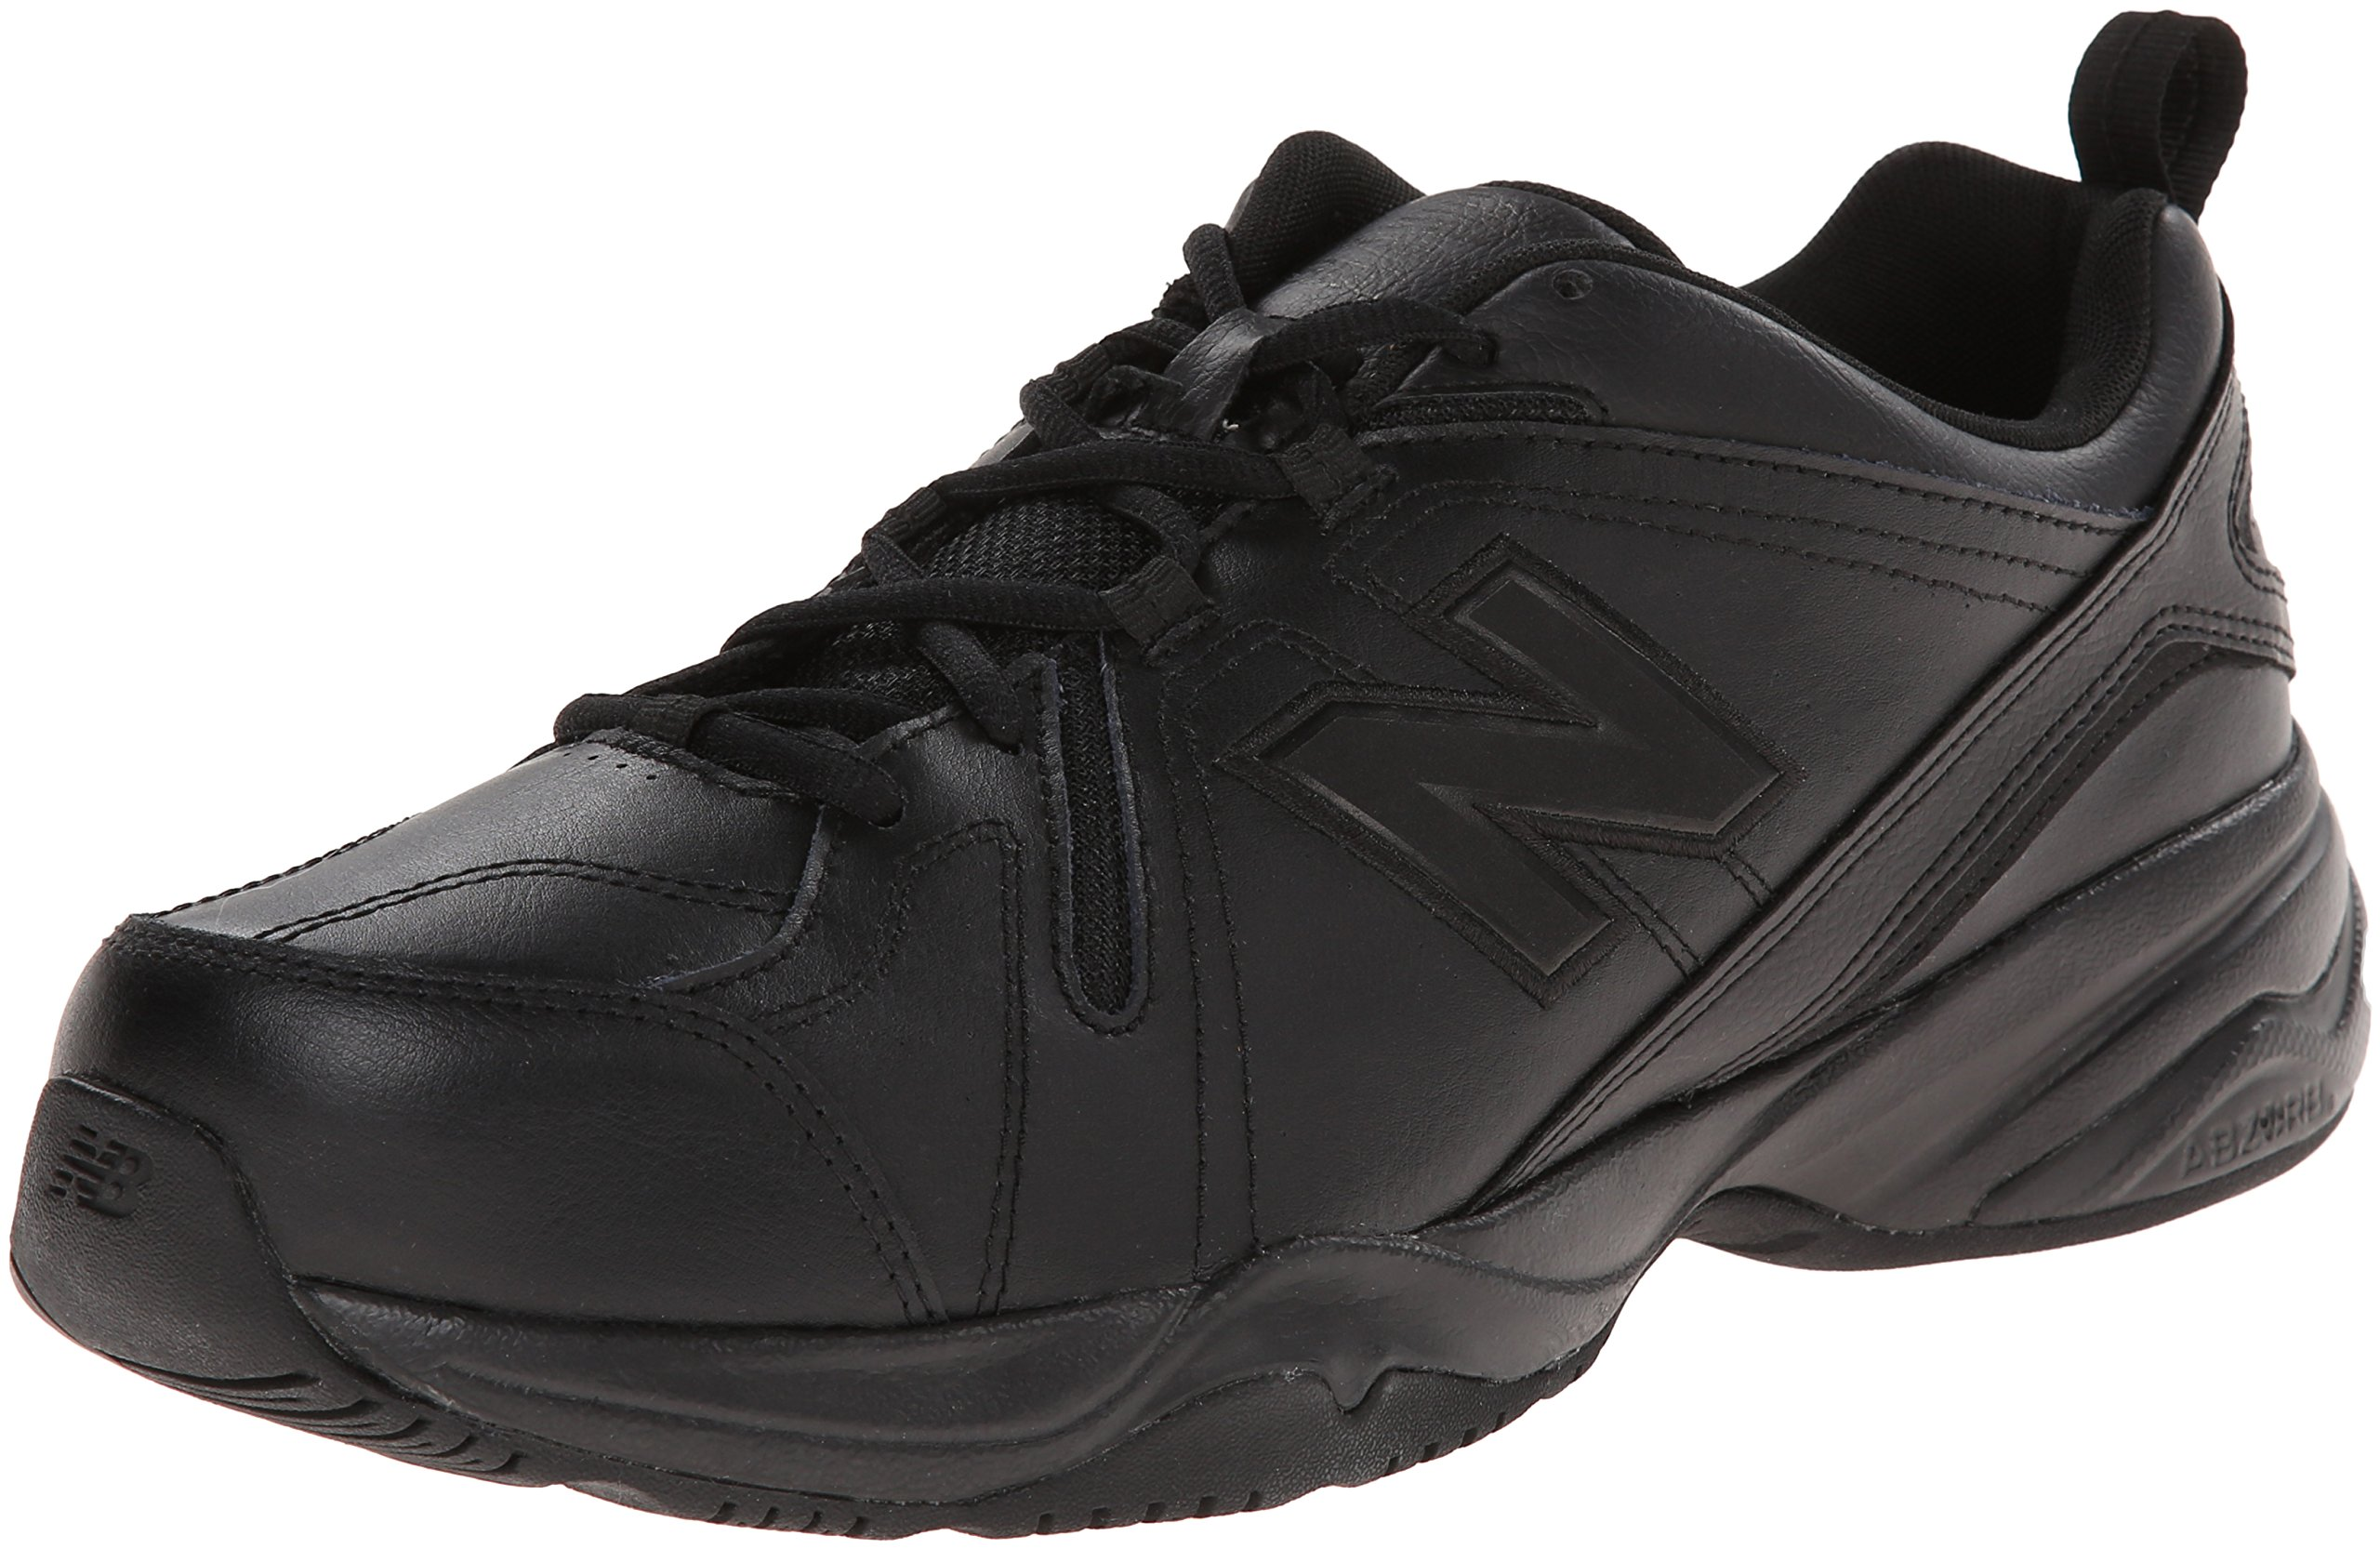 New Balance Men's MX608v4 Training Shoe, Black, 8 D US by New Balance (Image #1)